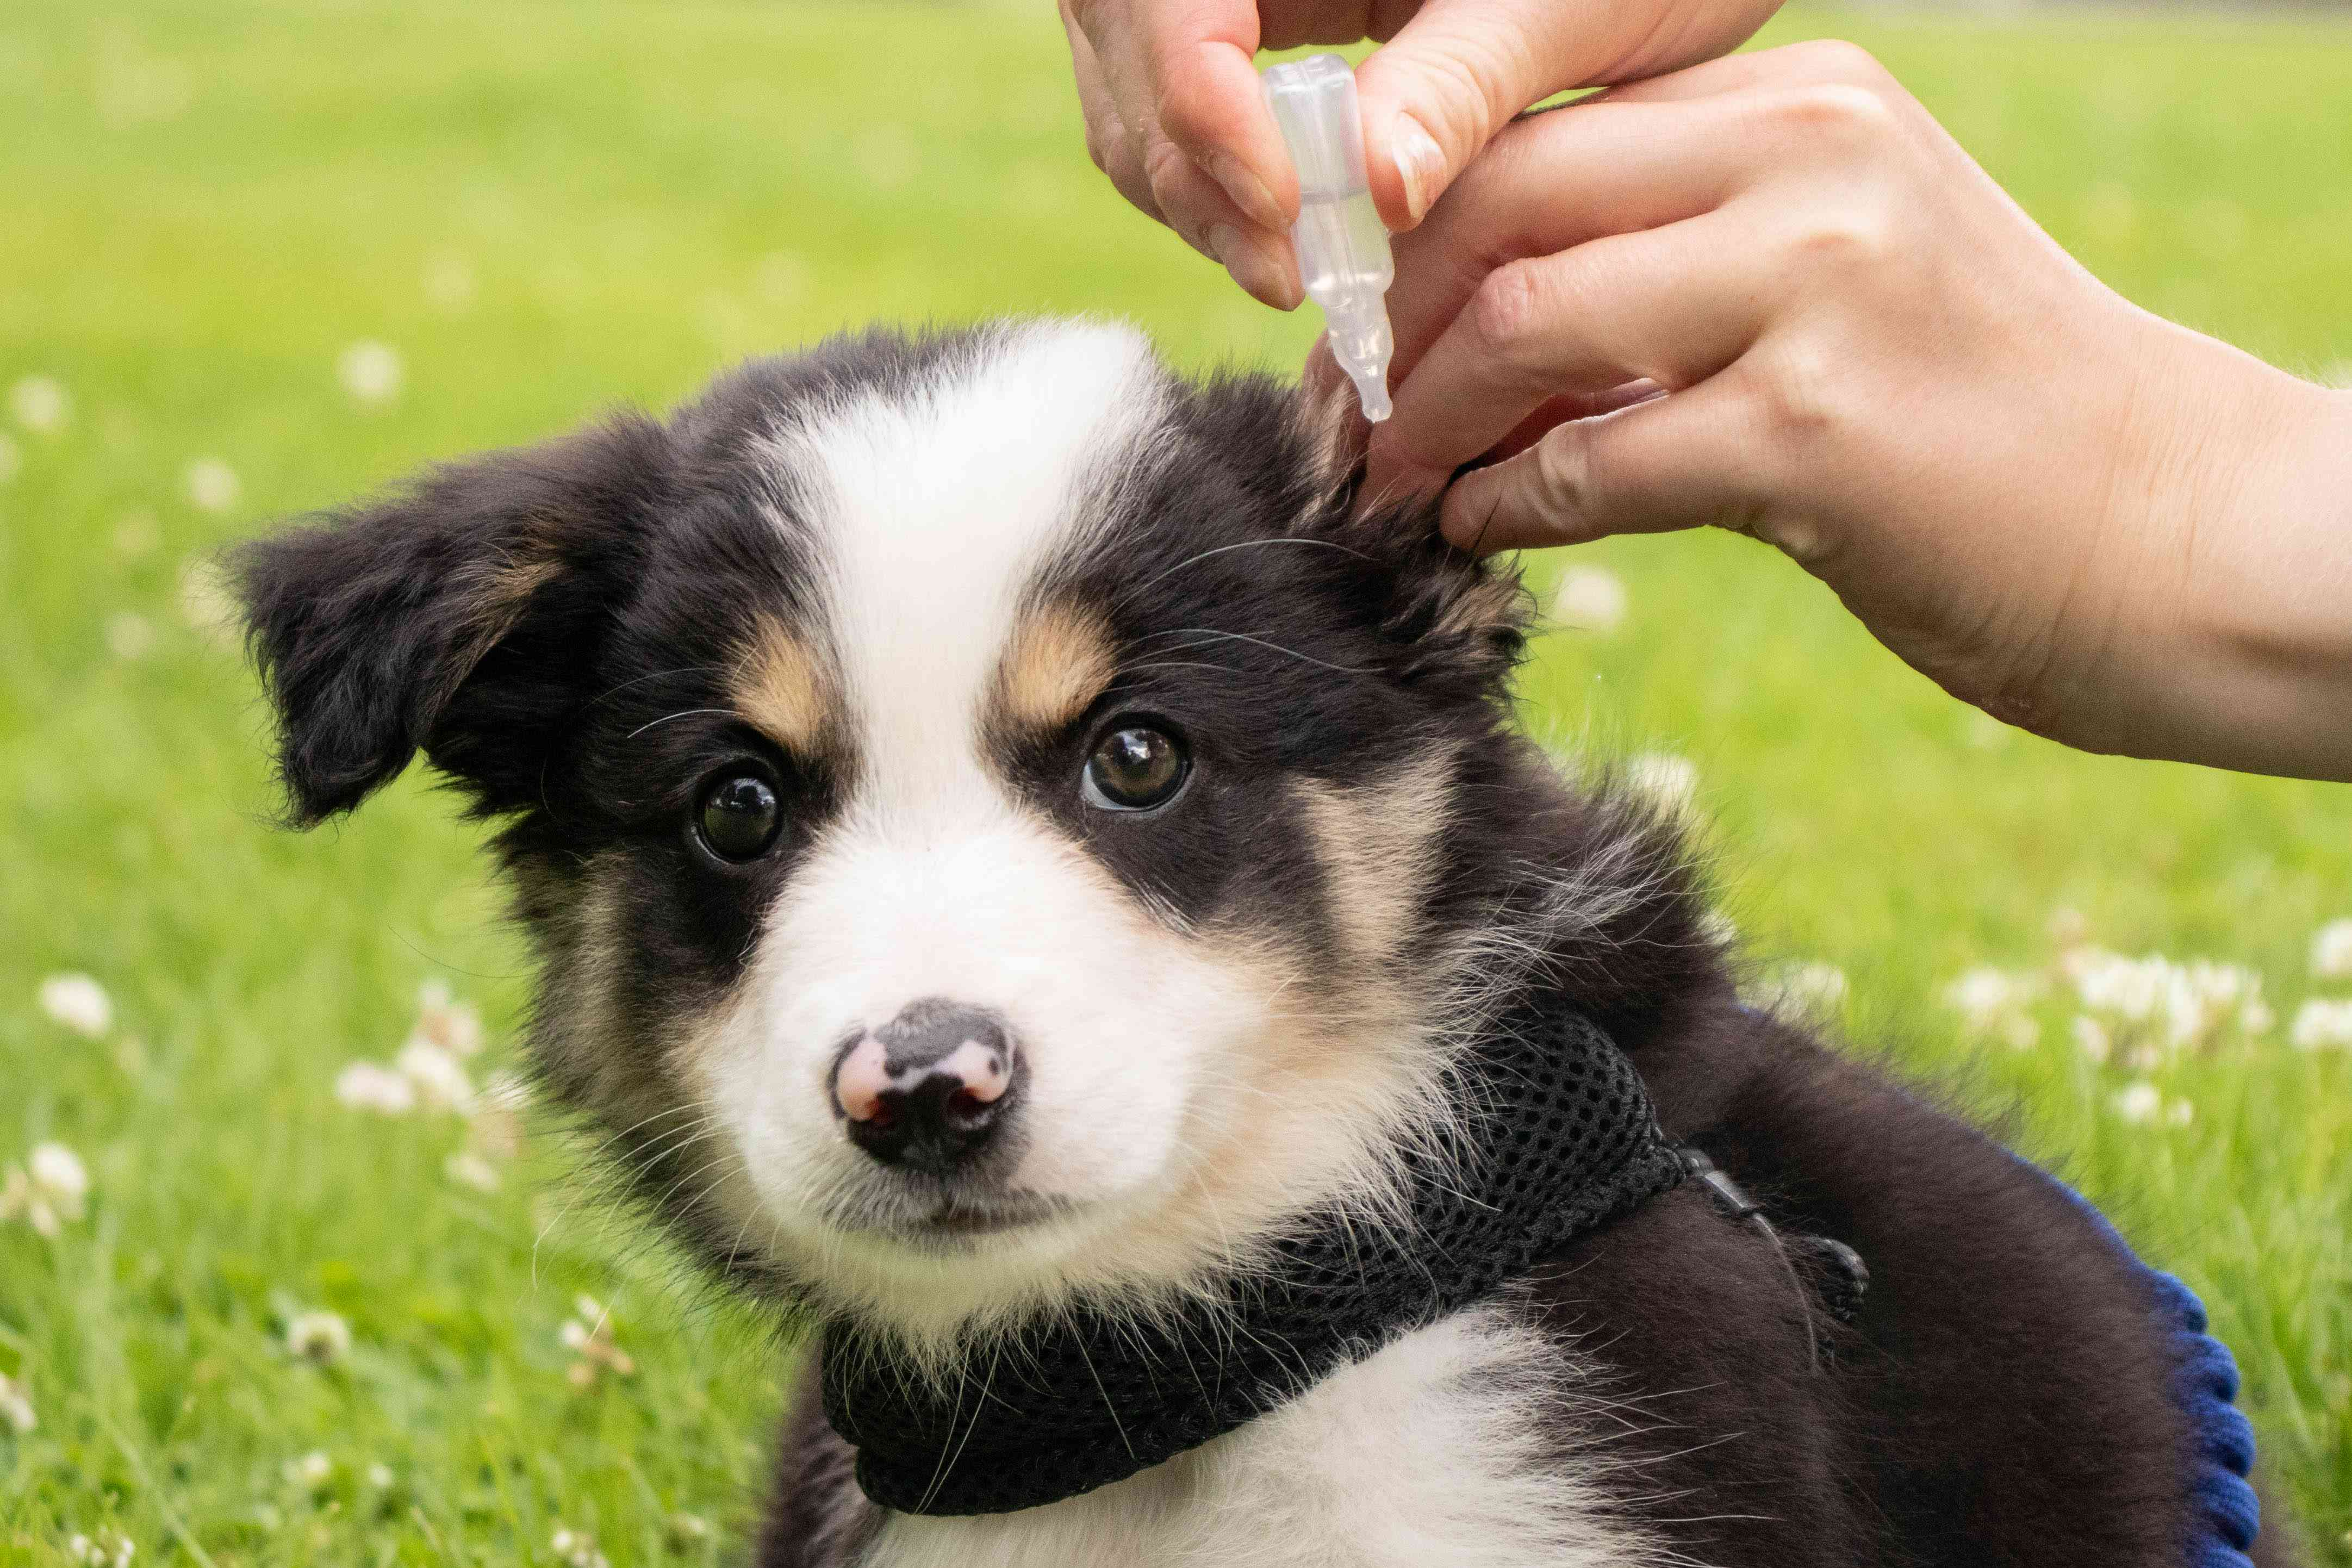 Ear mite medication drops being placed inside black and white puppy's ear